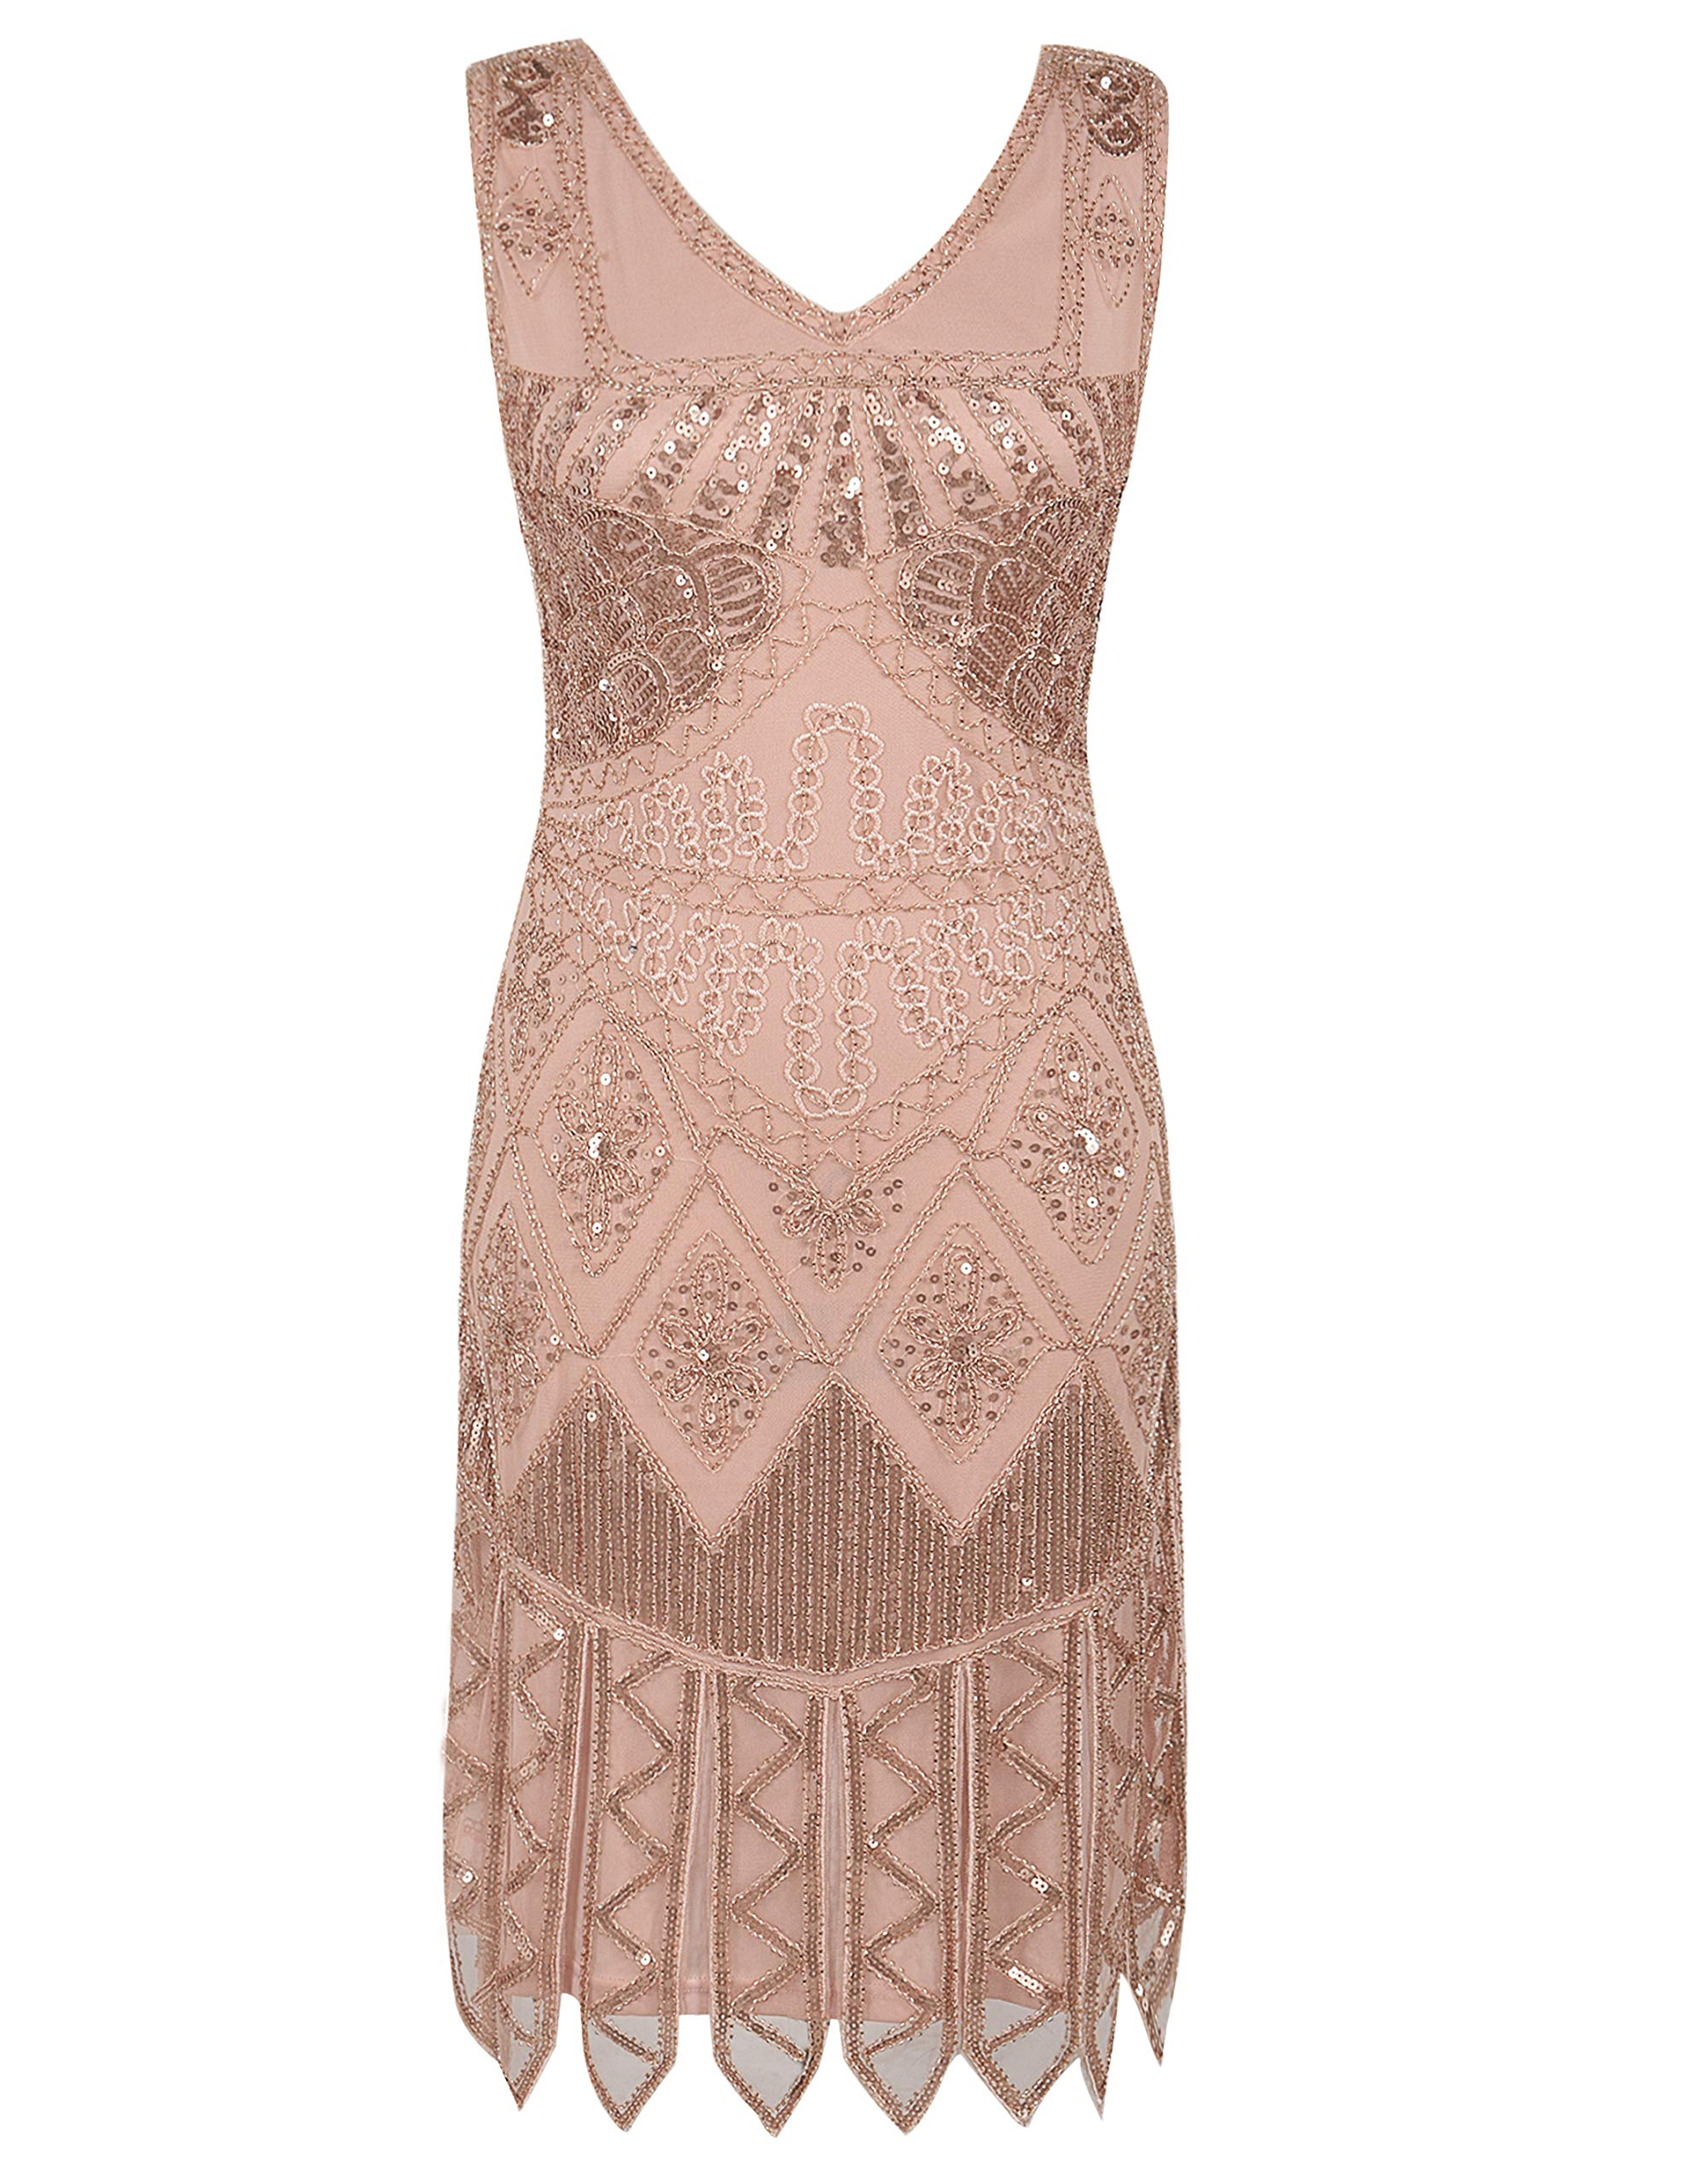 7073679e916 PrettyGuide Womne s Flapper Dress Sundry Sequin Embroidered 1920s Cocktail  Dress S Rose Gold